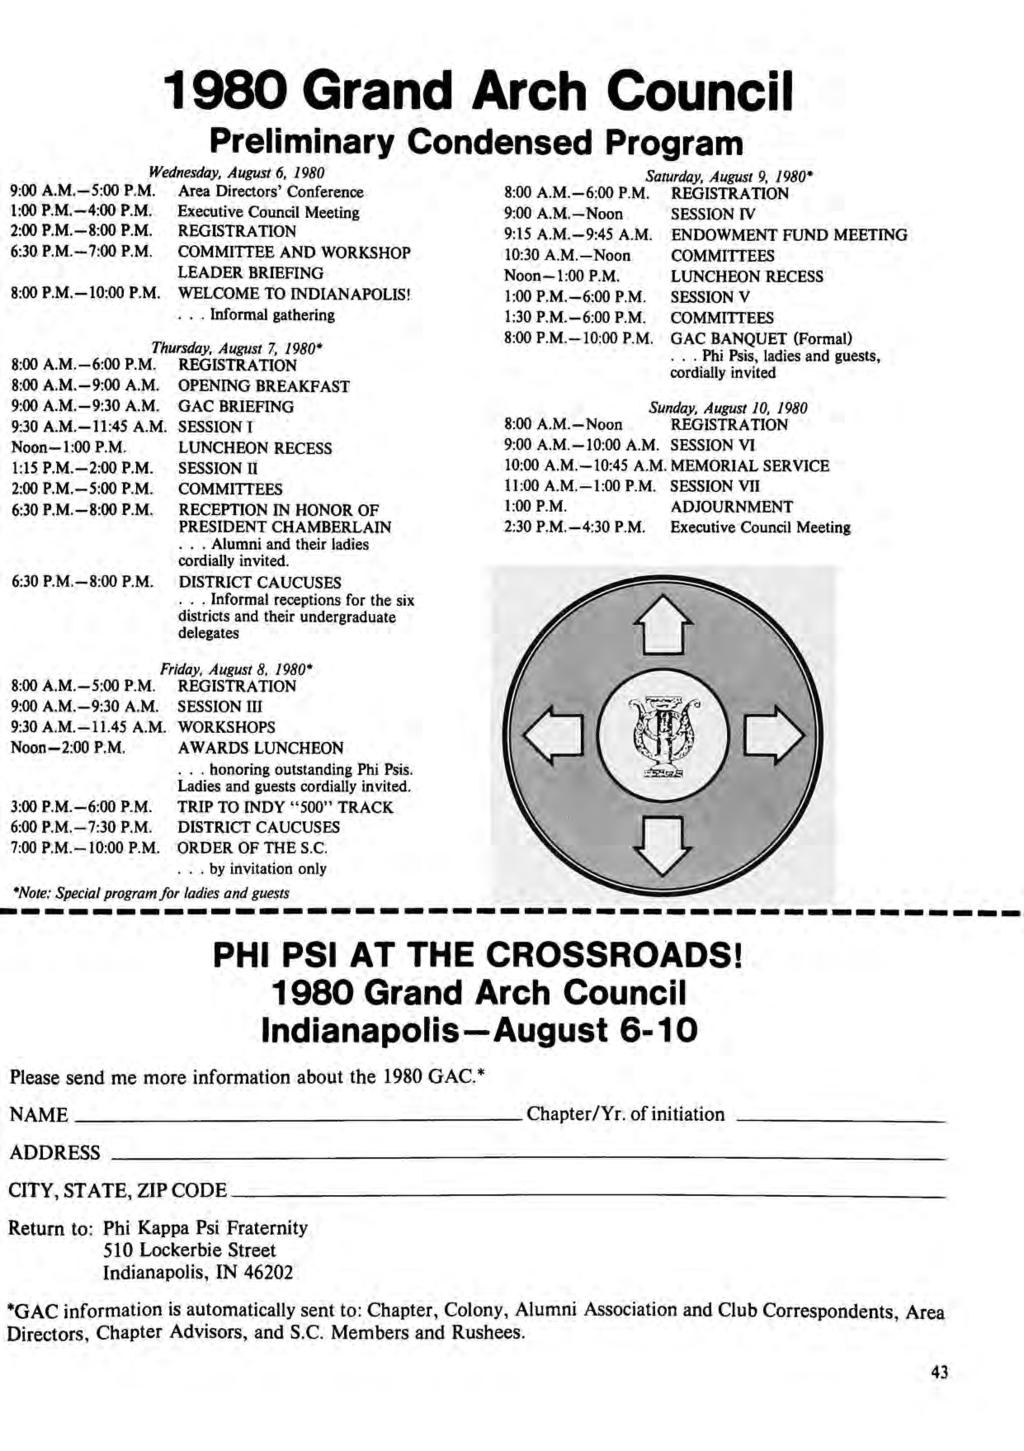 1980 Grand Arch Council Preiiminary Condensed Program Wednesday, August 6, 1980 9:00 A.M 5:00 P.M. Area Directors' Conference 1:00 P.M. -4:00 P.M. Executive Council Meeting 2:00 P.M -8:00 P.M. REGISTRATION 6:30 P.